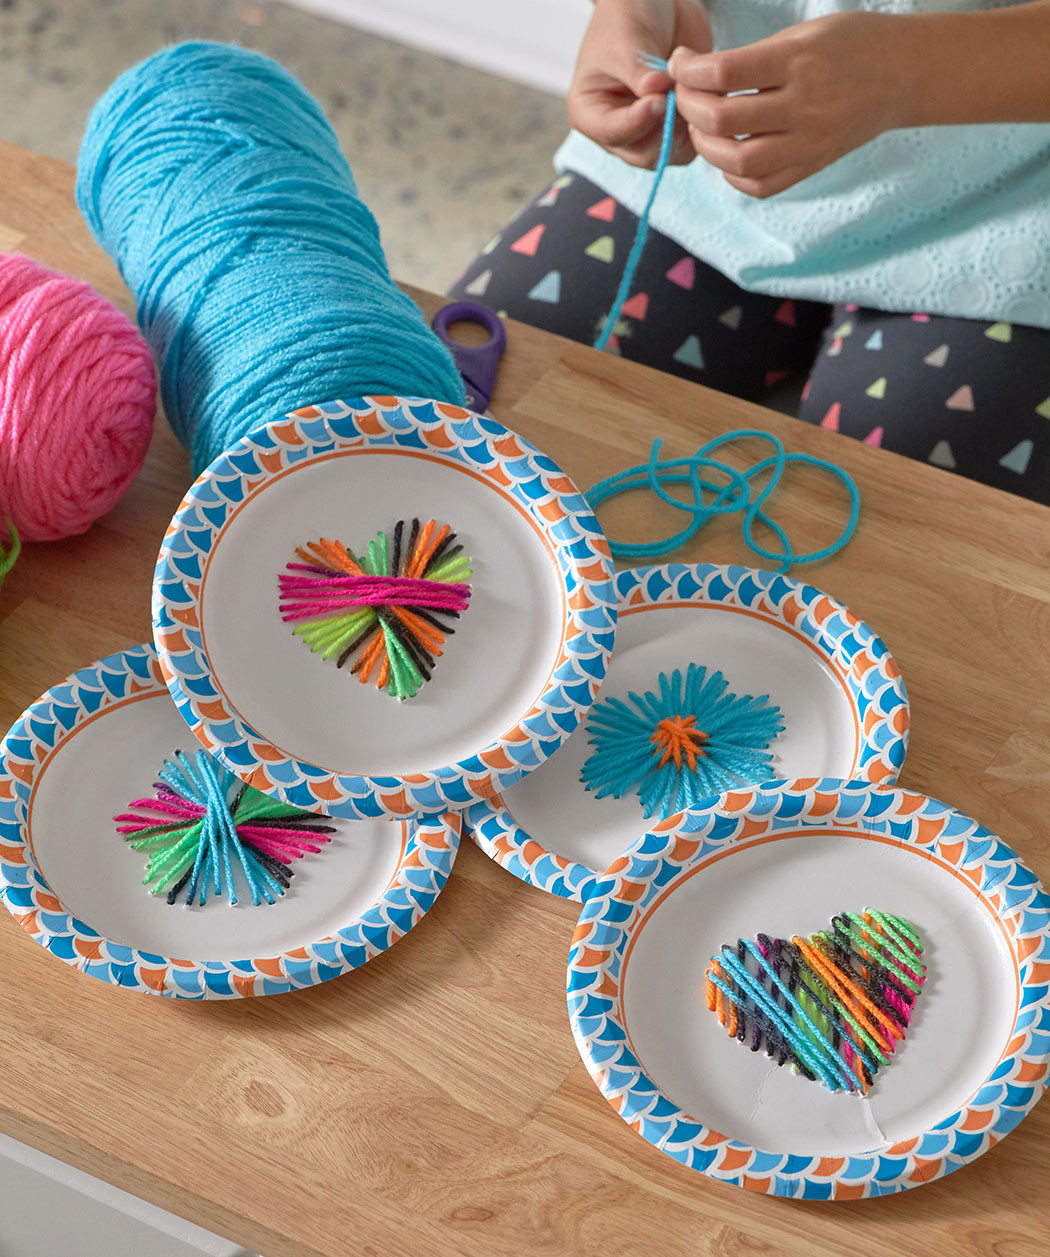 Best ideas about Cool Kids Crafts . Save or Pin 18 Cool Kids Crafts Ideas Now.